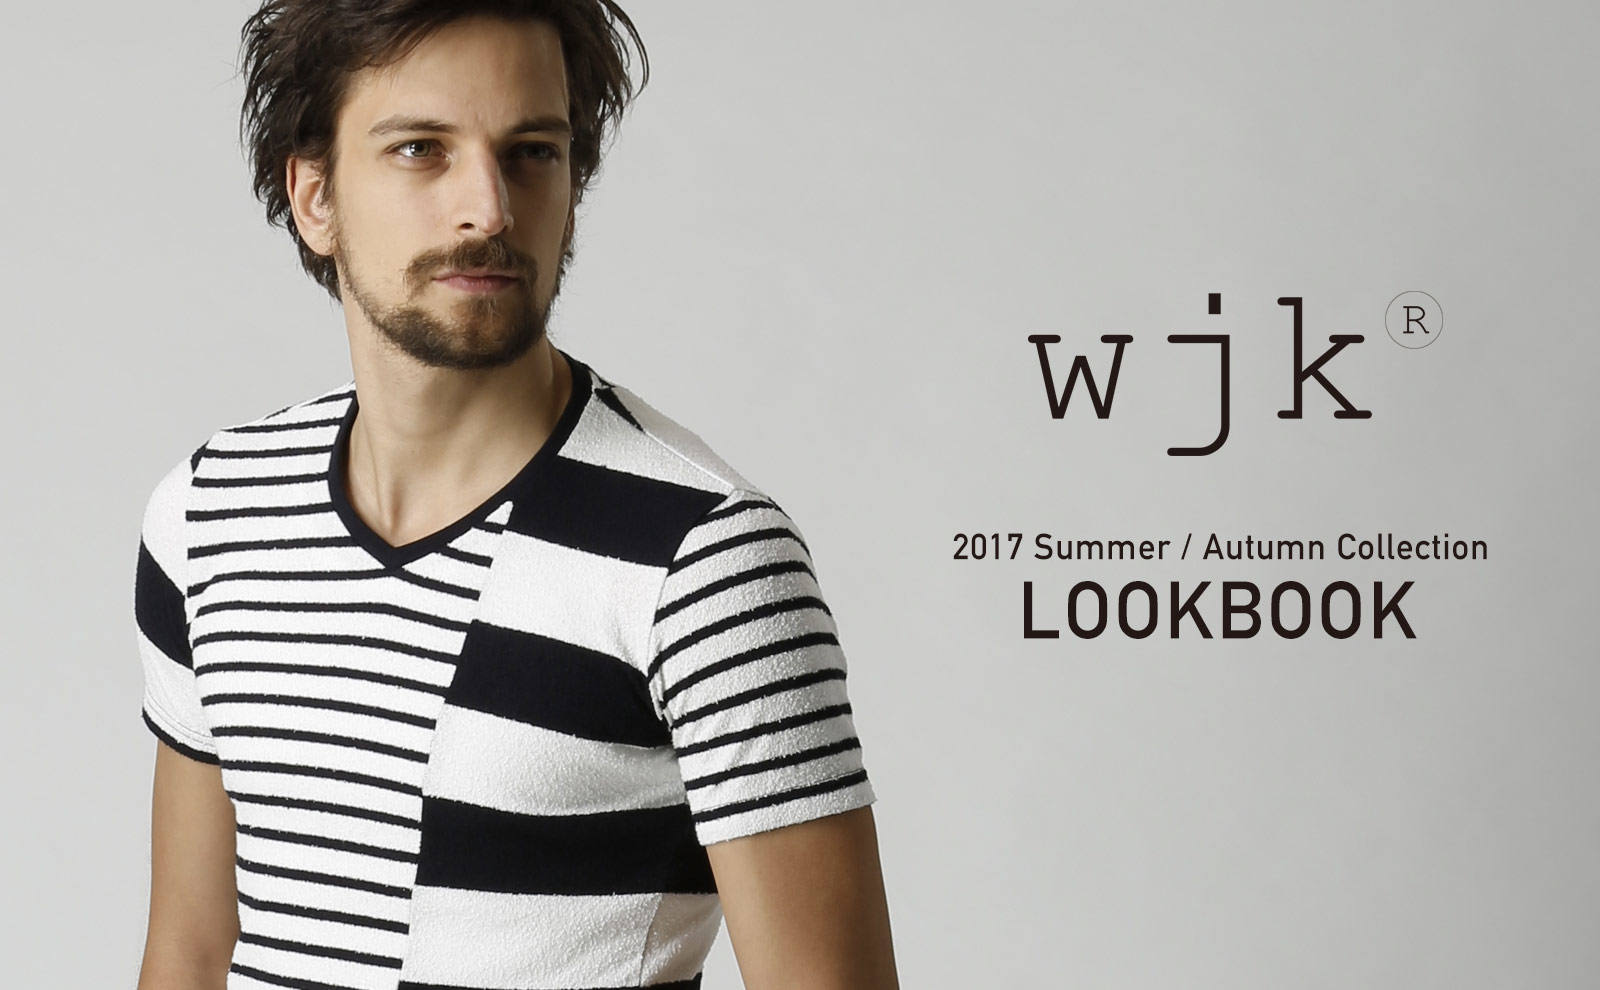 2017S/A COLLECTION LOOKBOOK